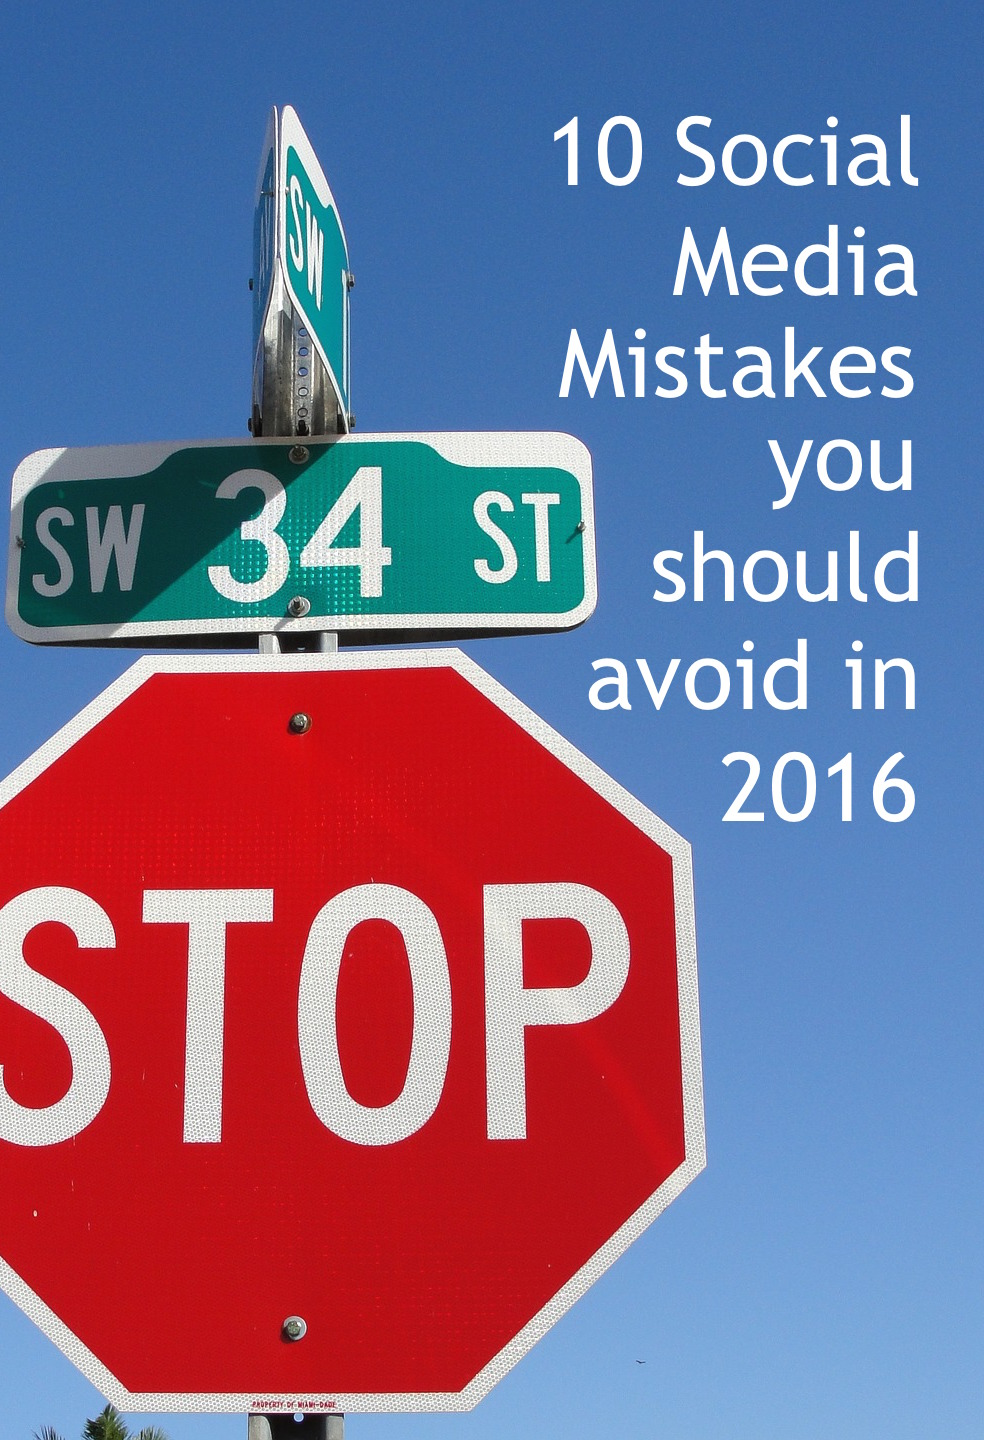 MISTAKES ON SOCIAL stop sign CATMEIDA